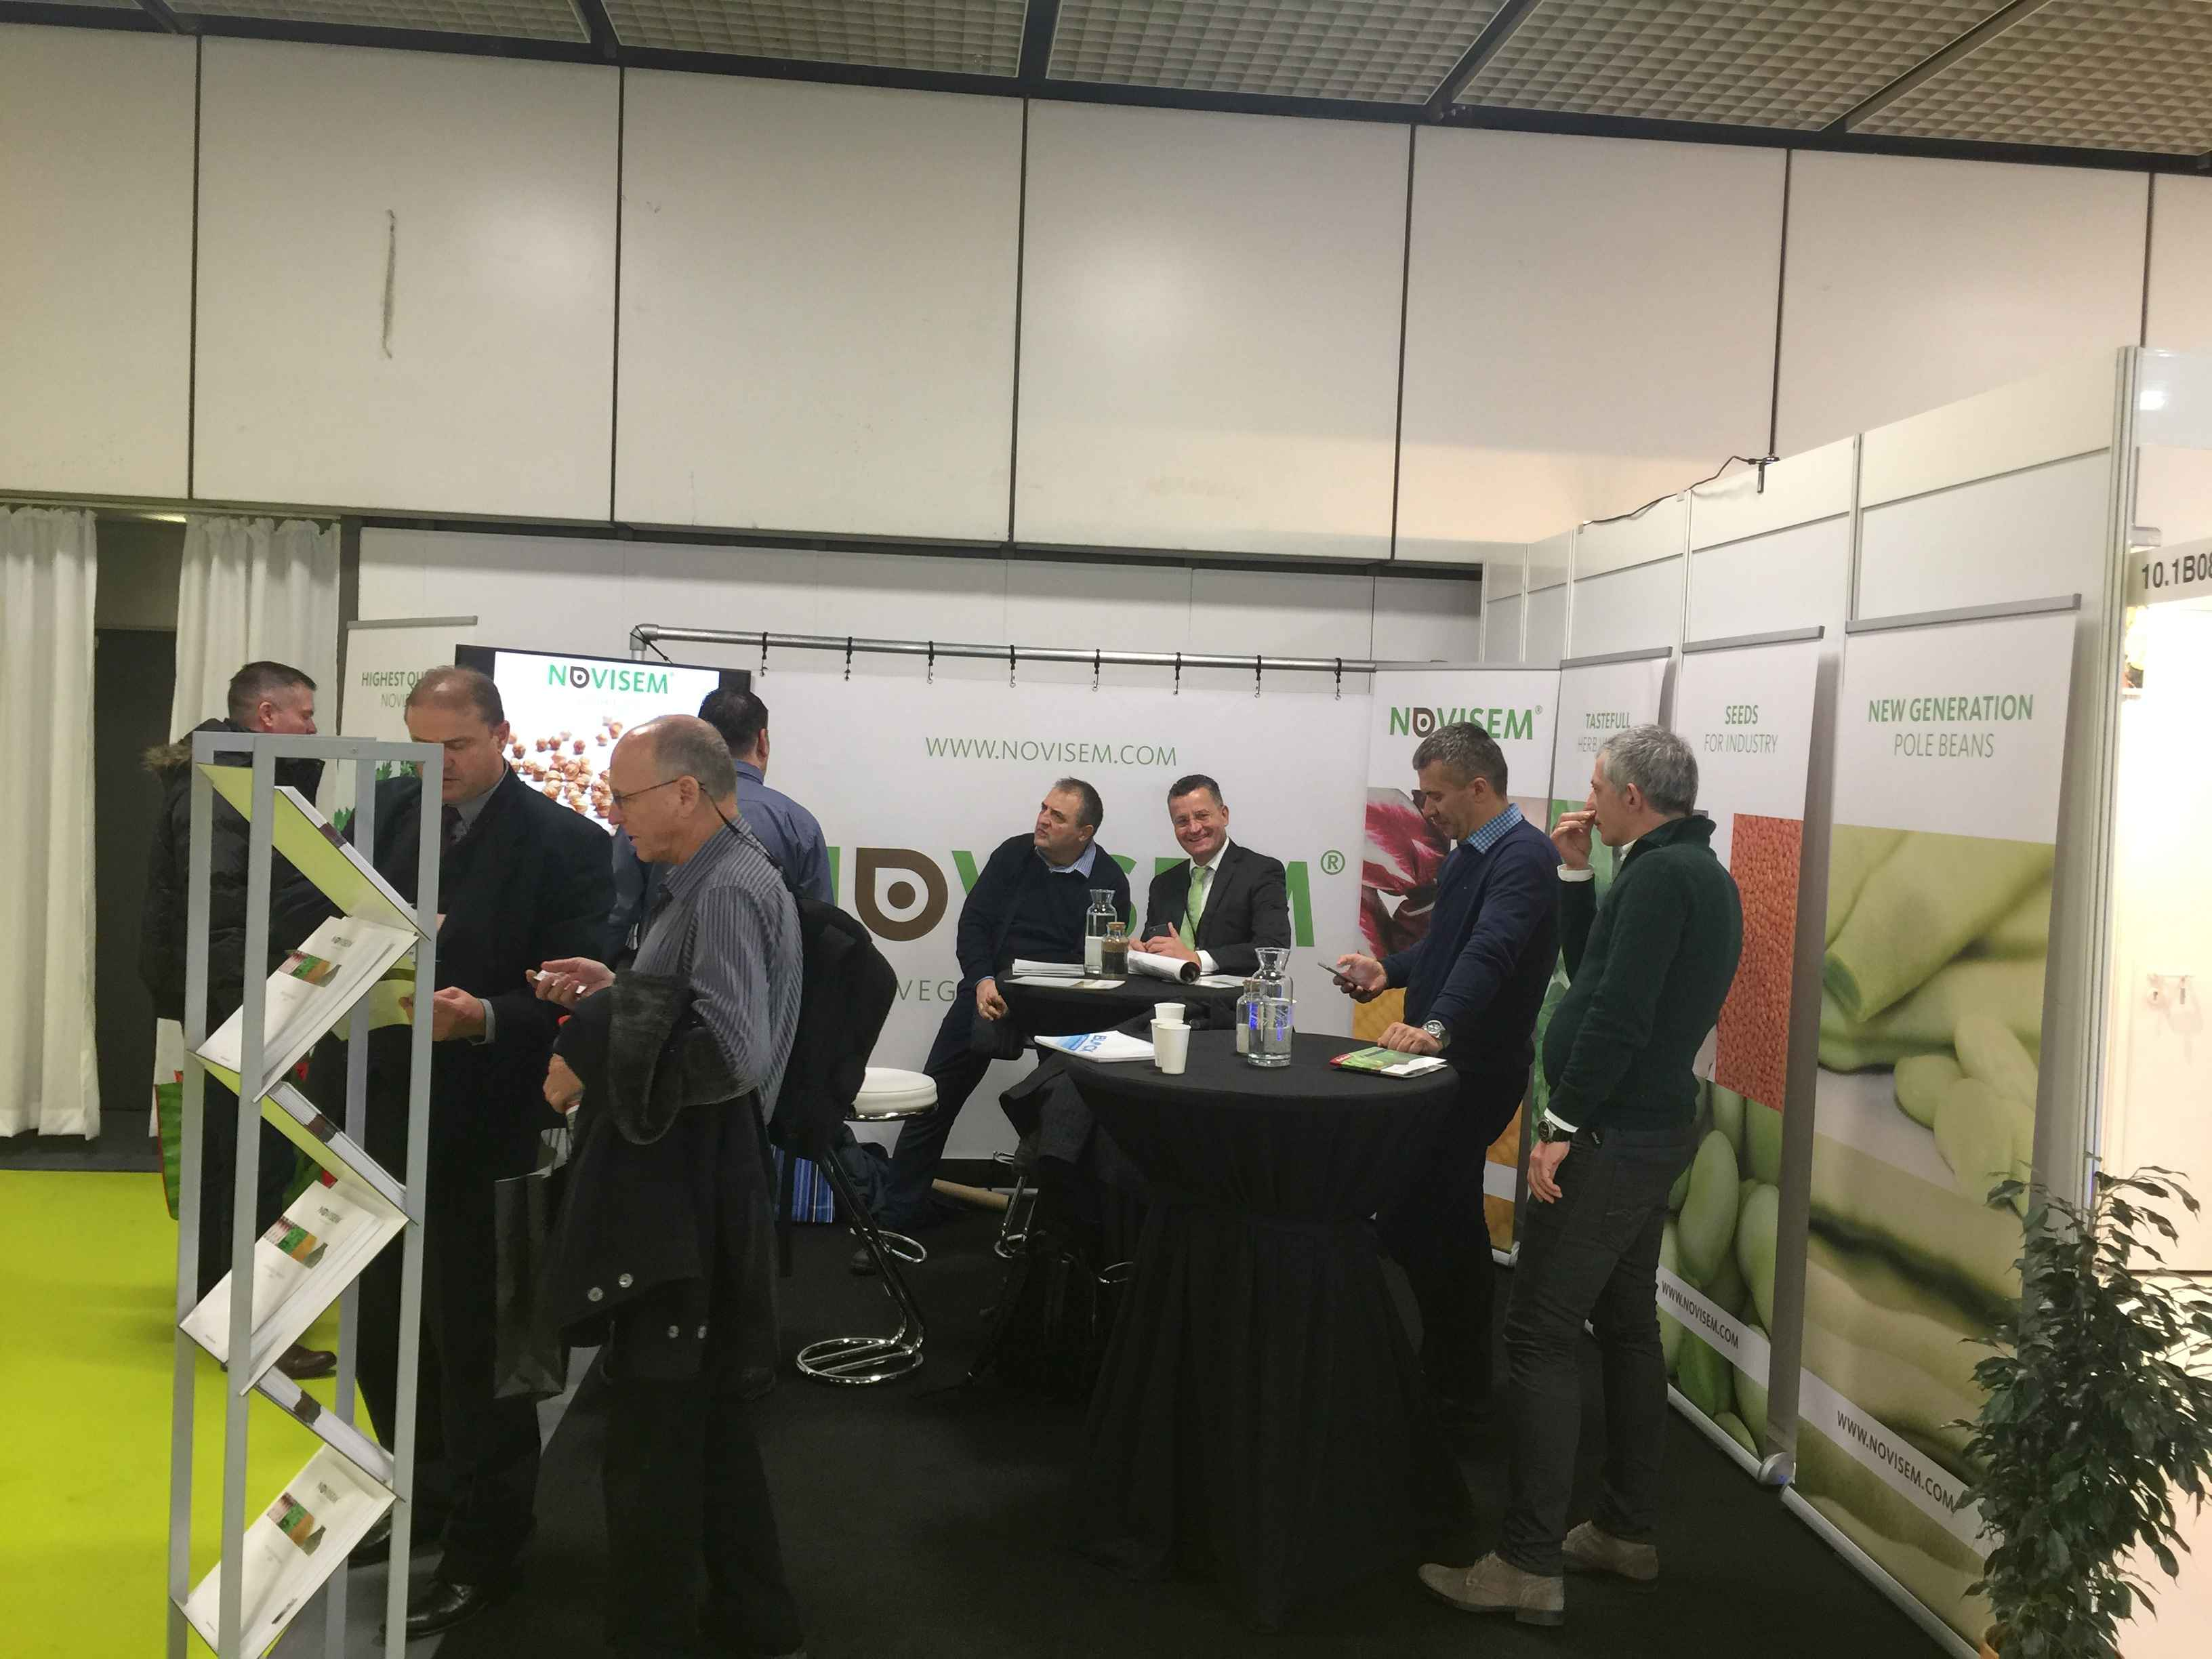 Novisem attended the Fruit Logistica Berlin